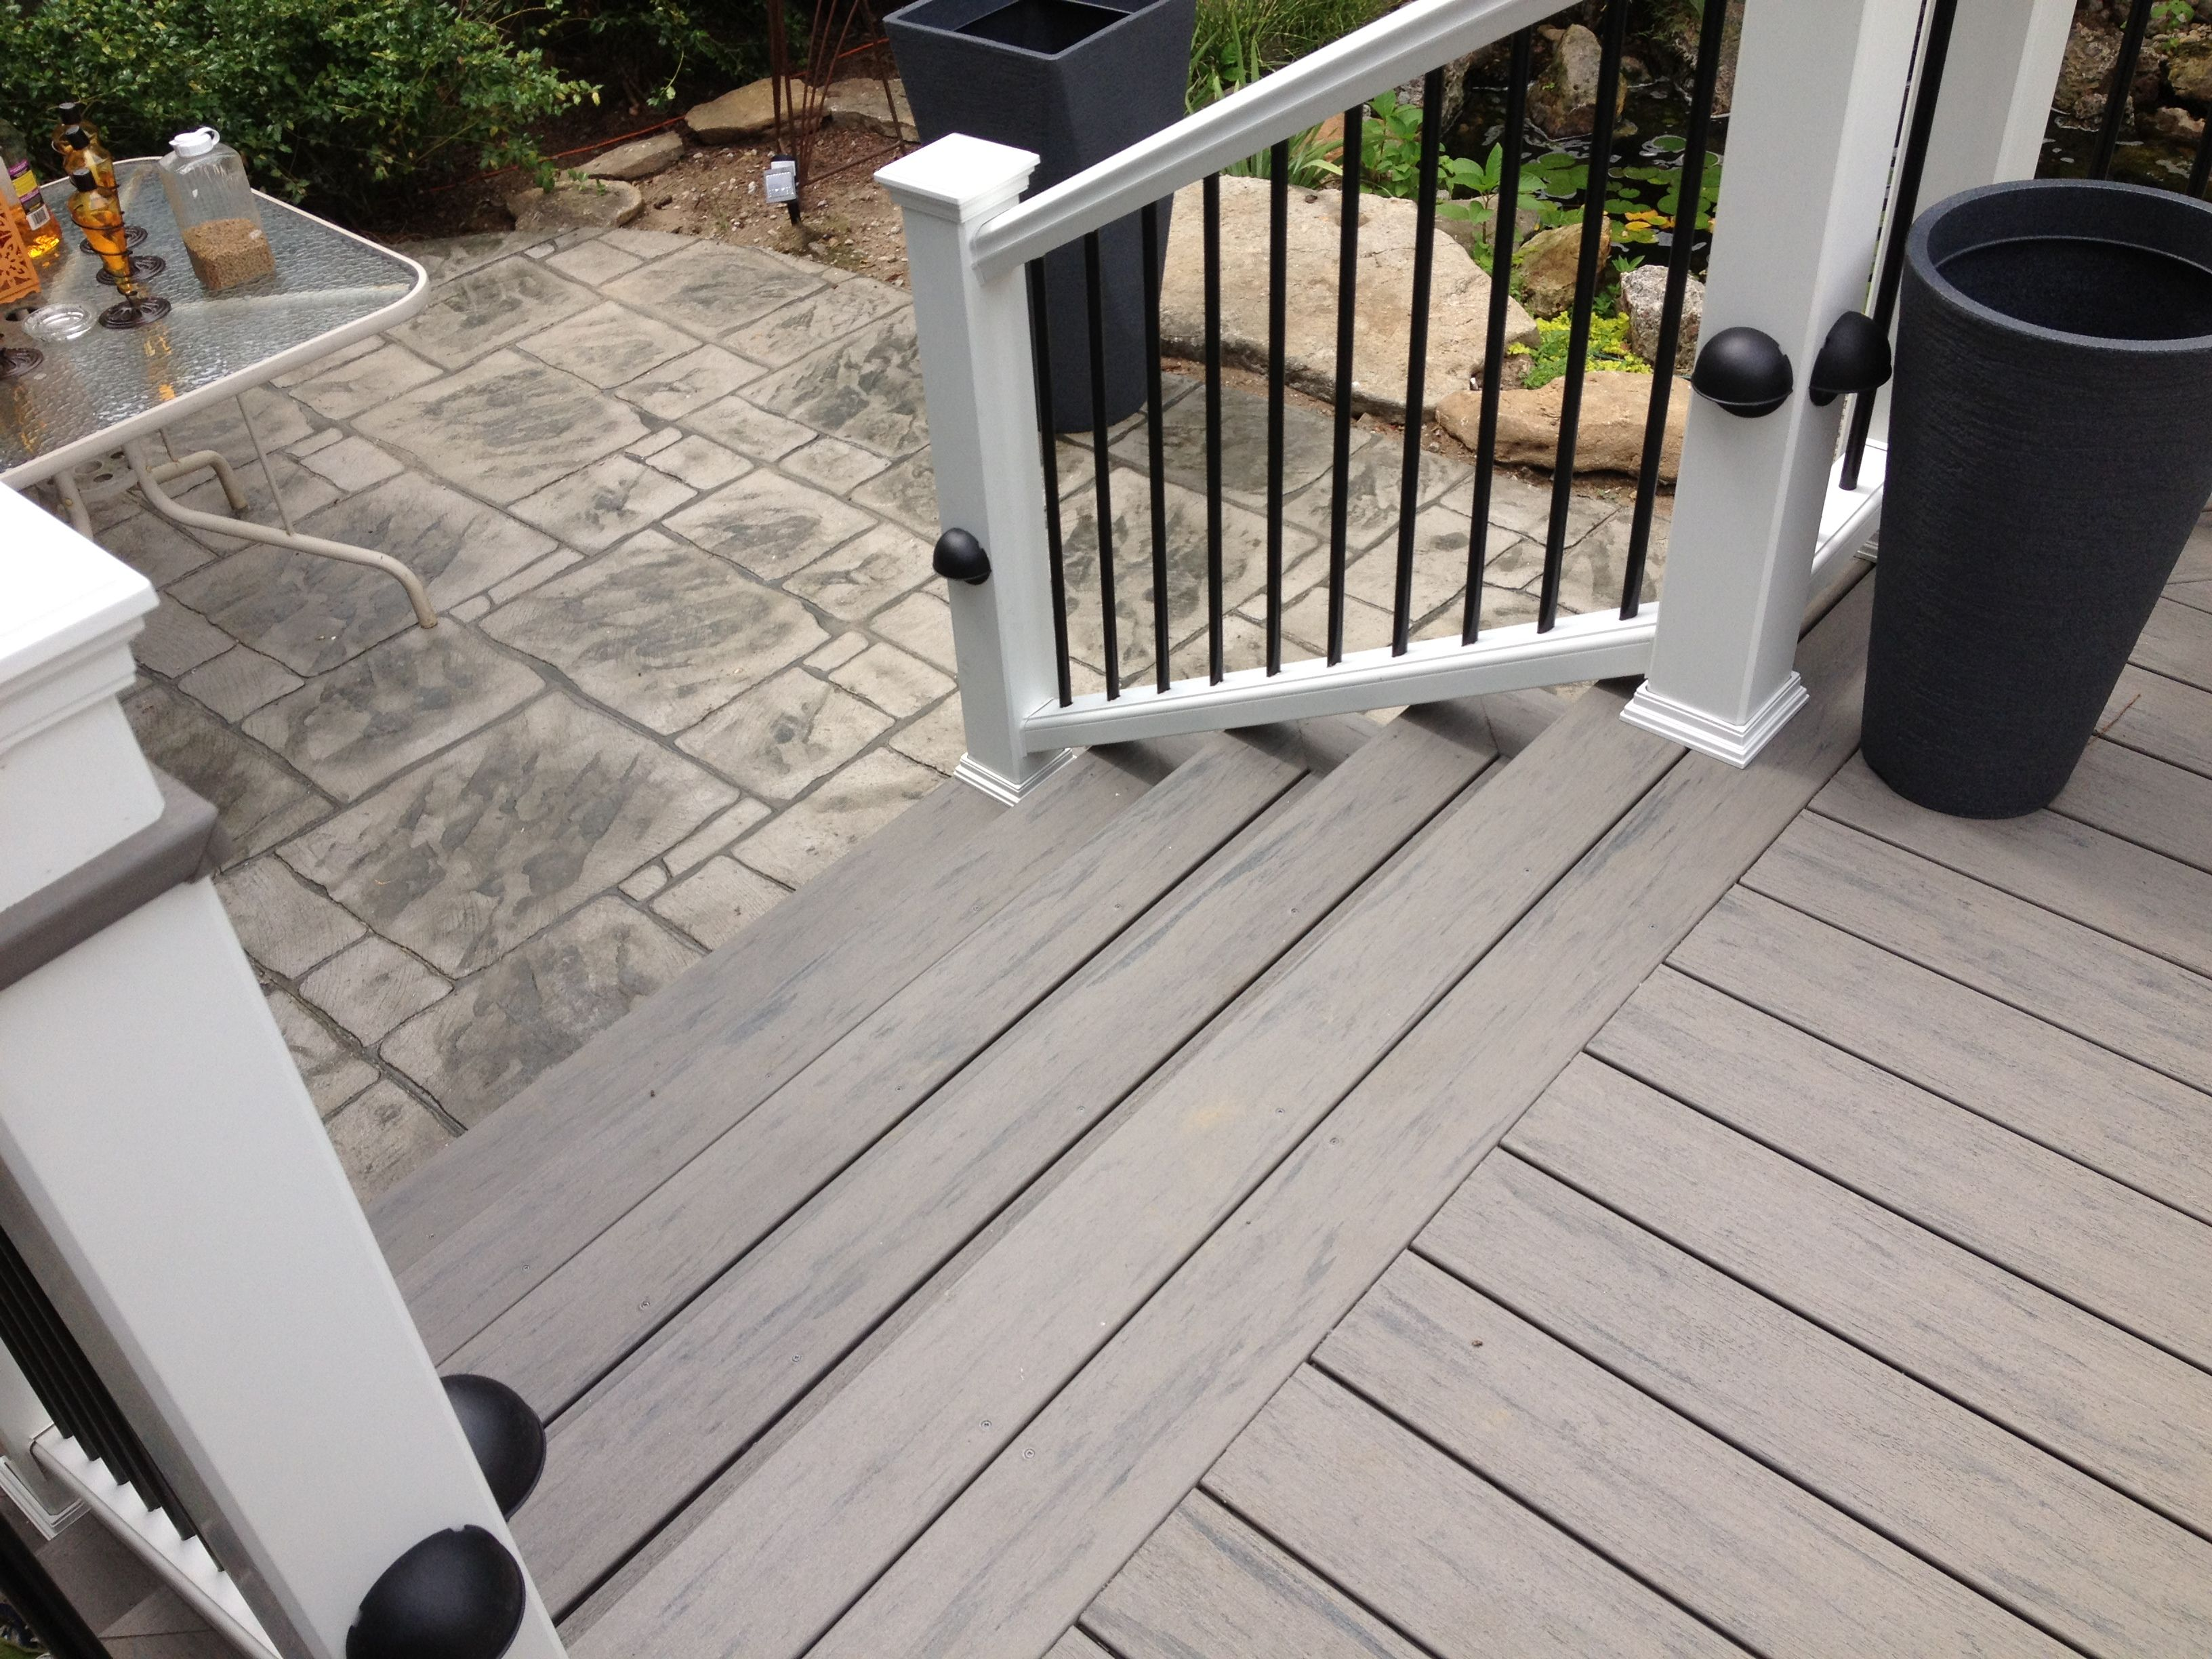 Double Picture Framed Decking And Stamped Concrete Patio: terrain decking